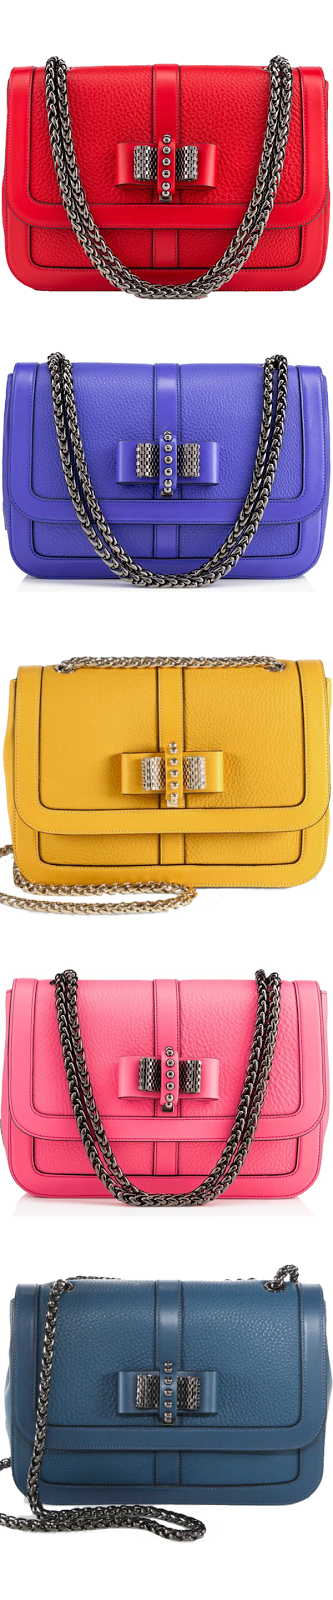 Sweet Charity bow detail Christian Louboutin bags